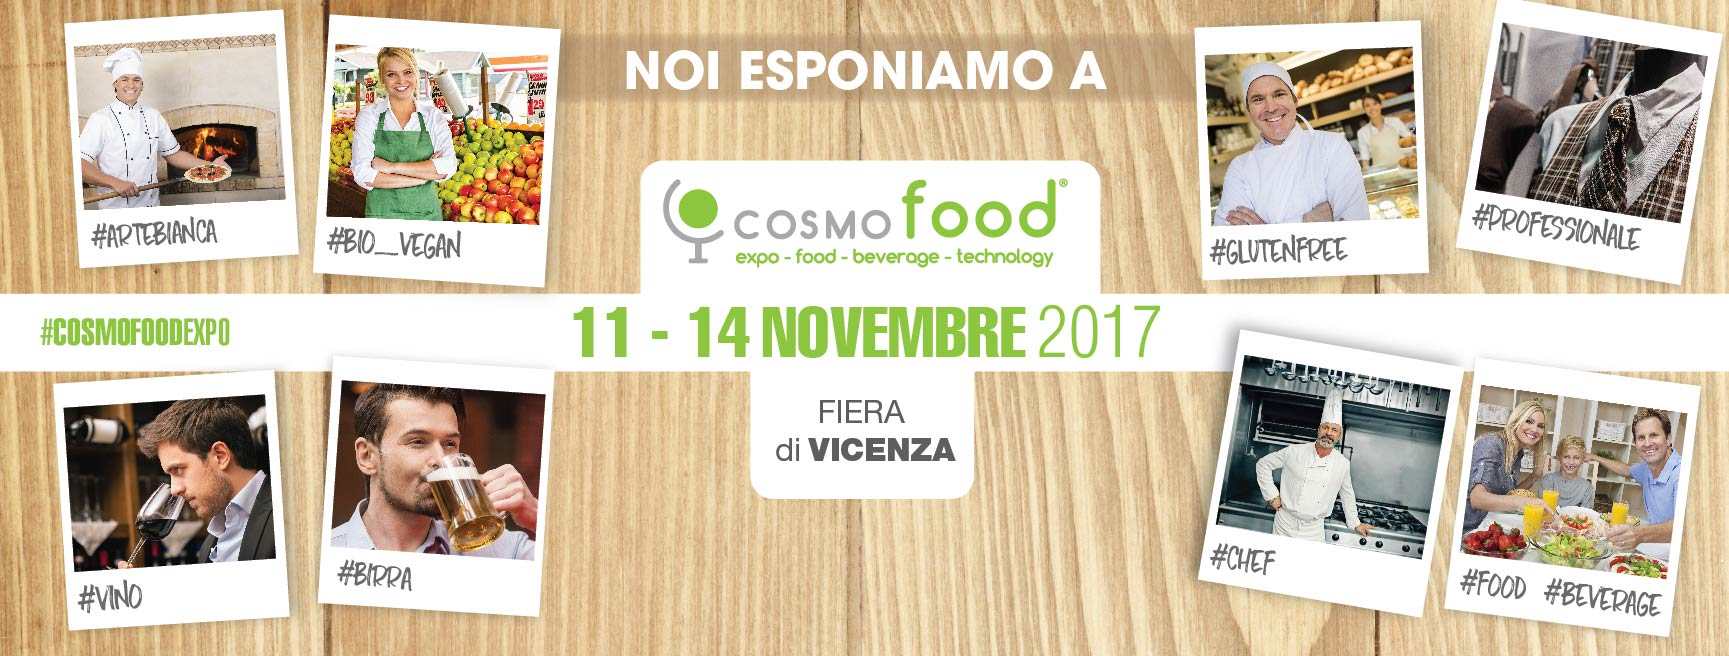 Cosmofood-Vicenza-2017